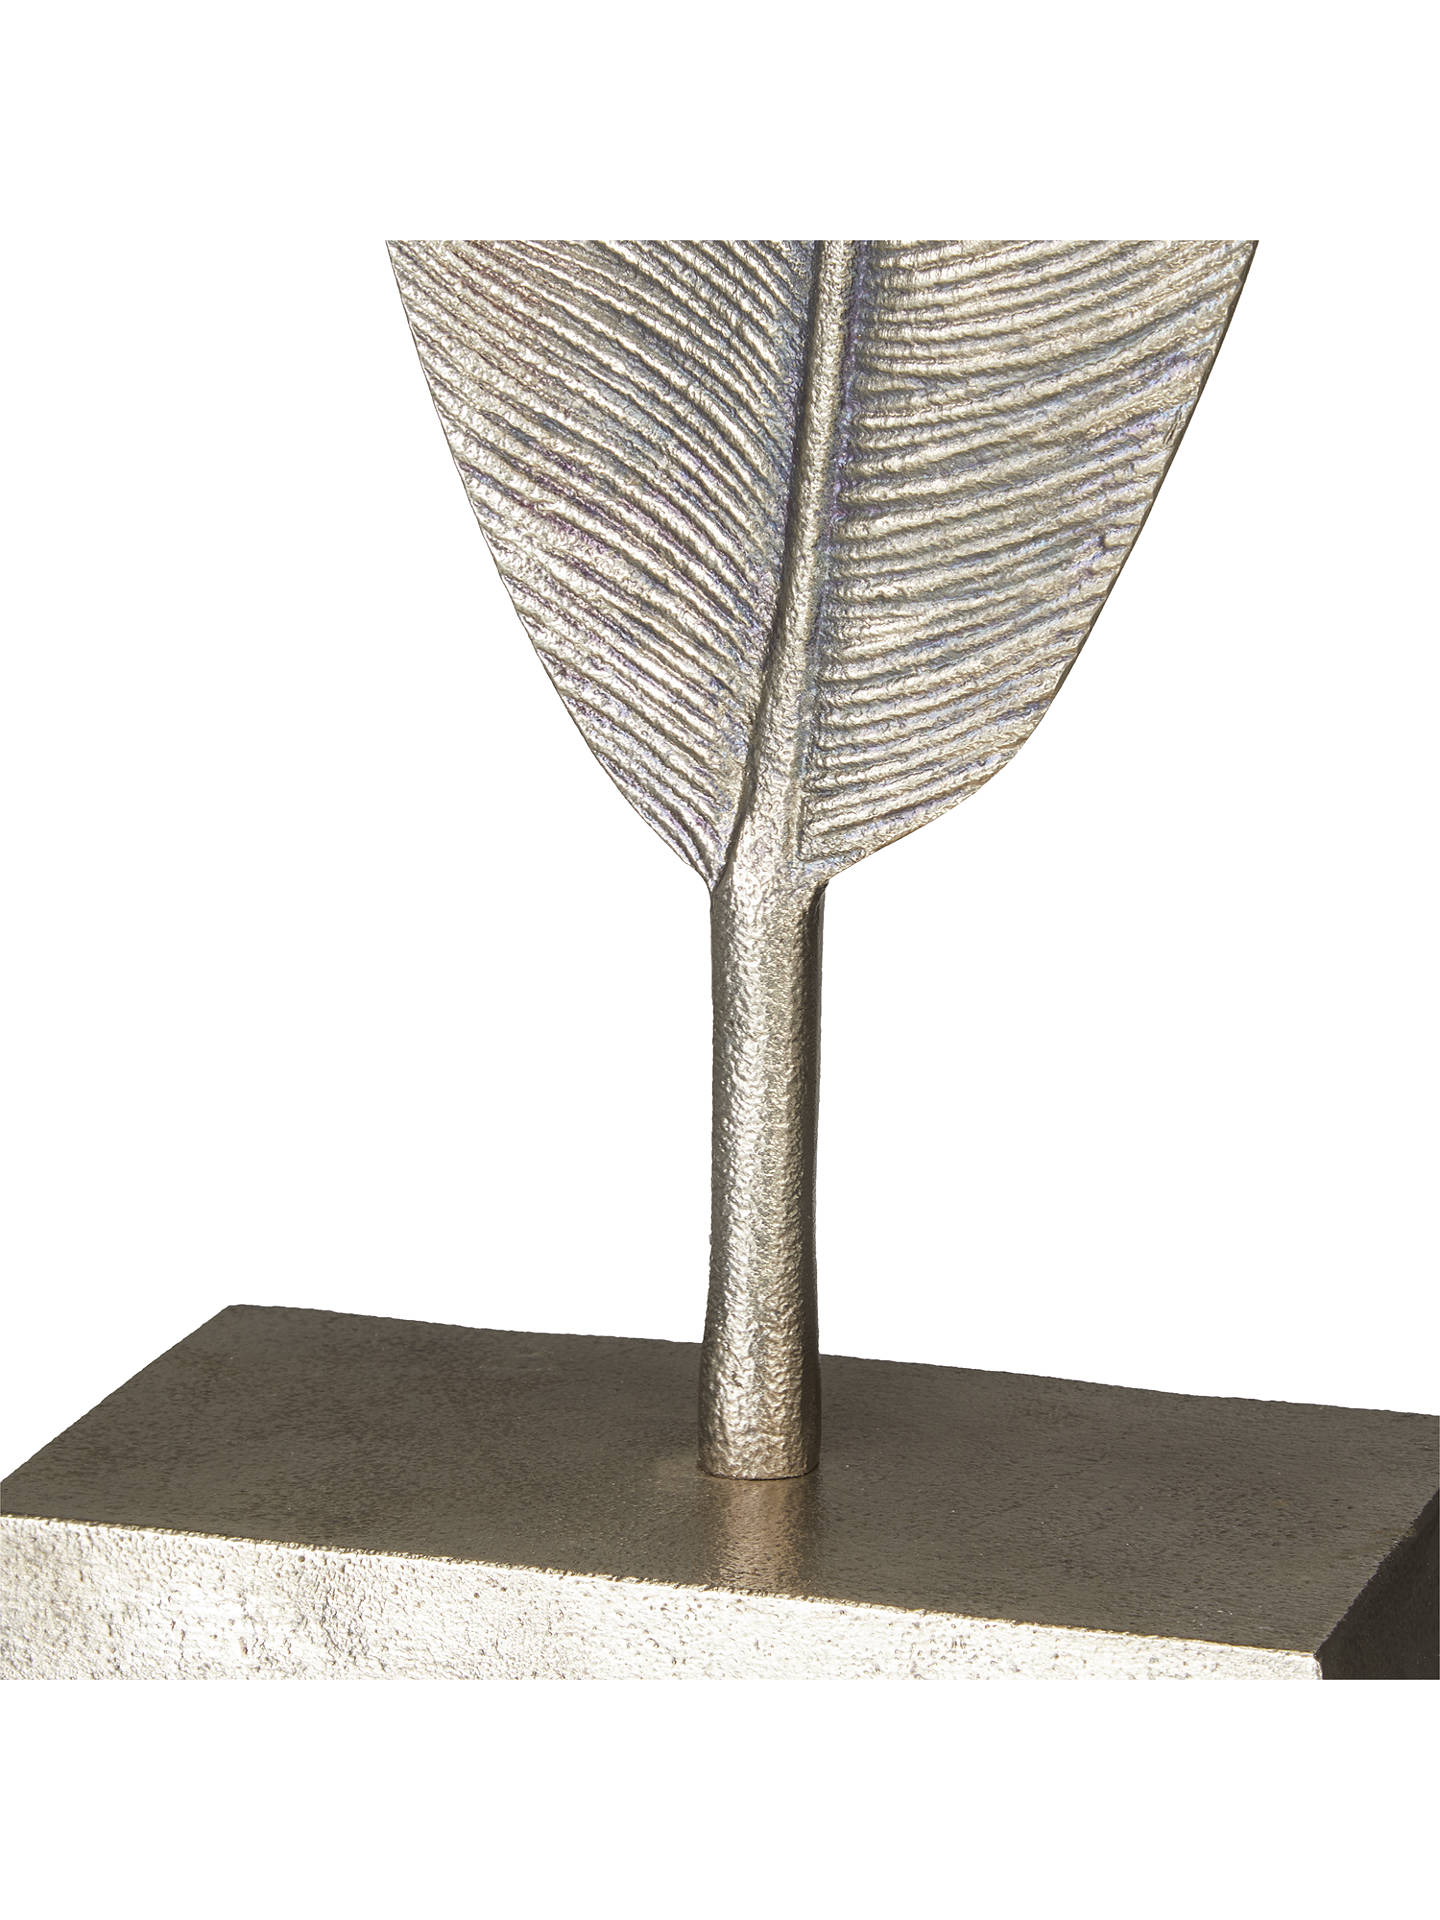 BuyJohn Lewis & Partners Feather Sculpture, Silver Online at johnlewis.com